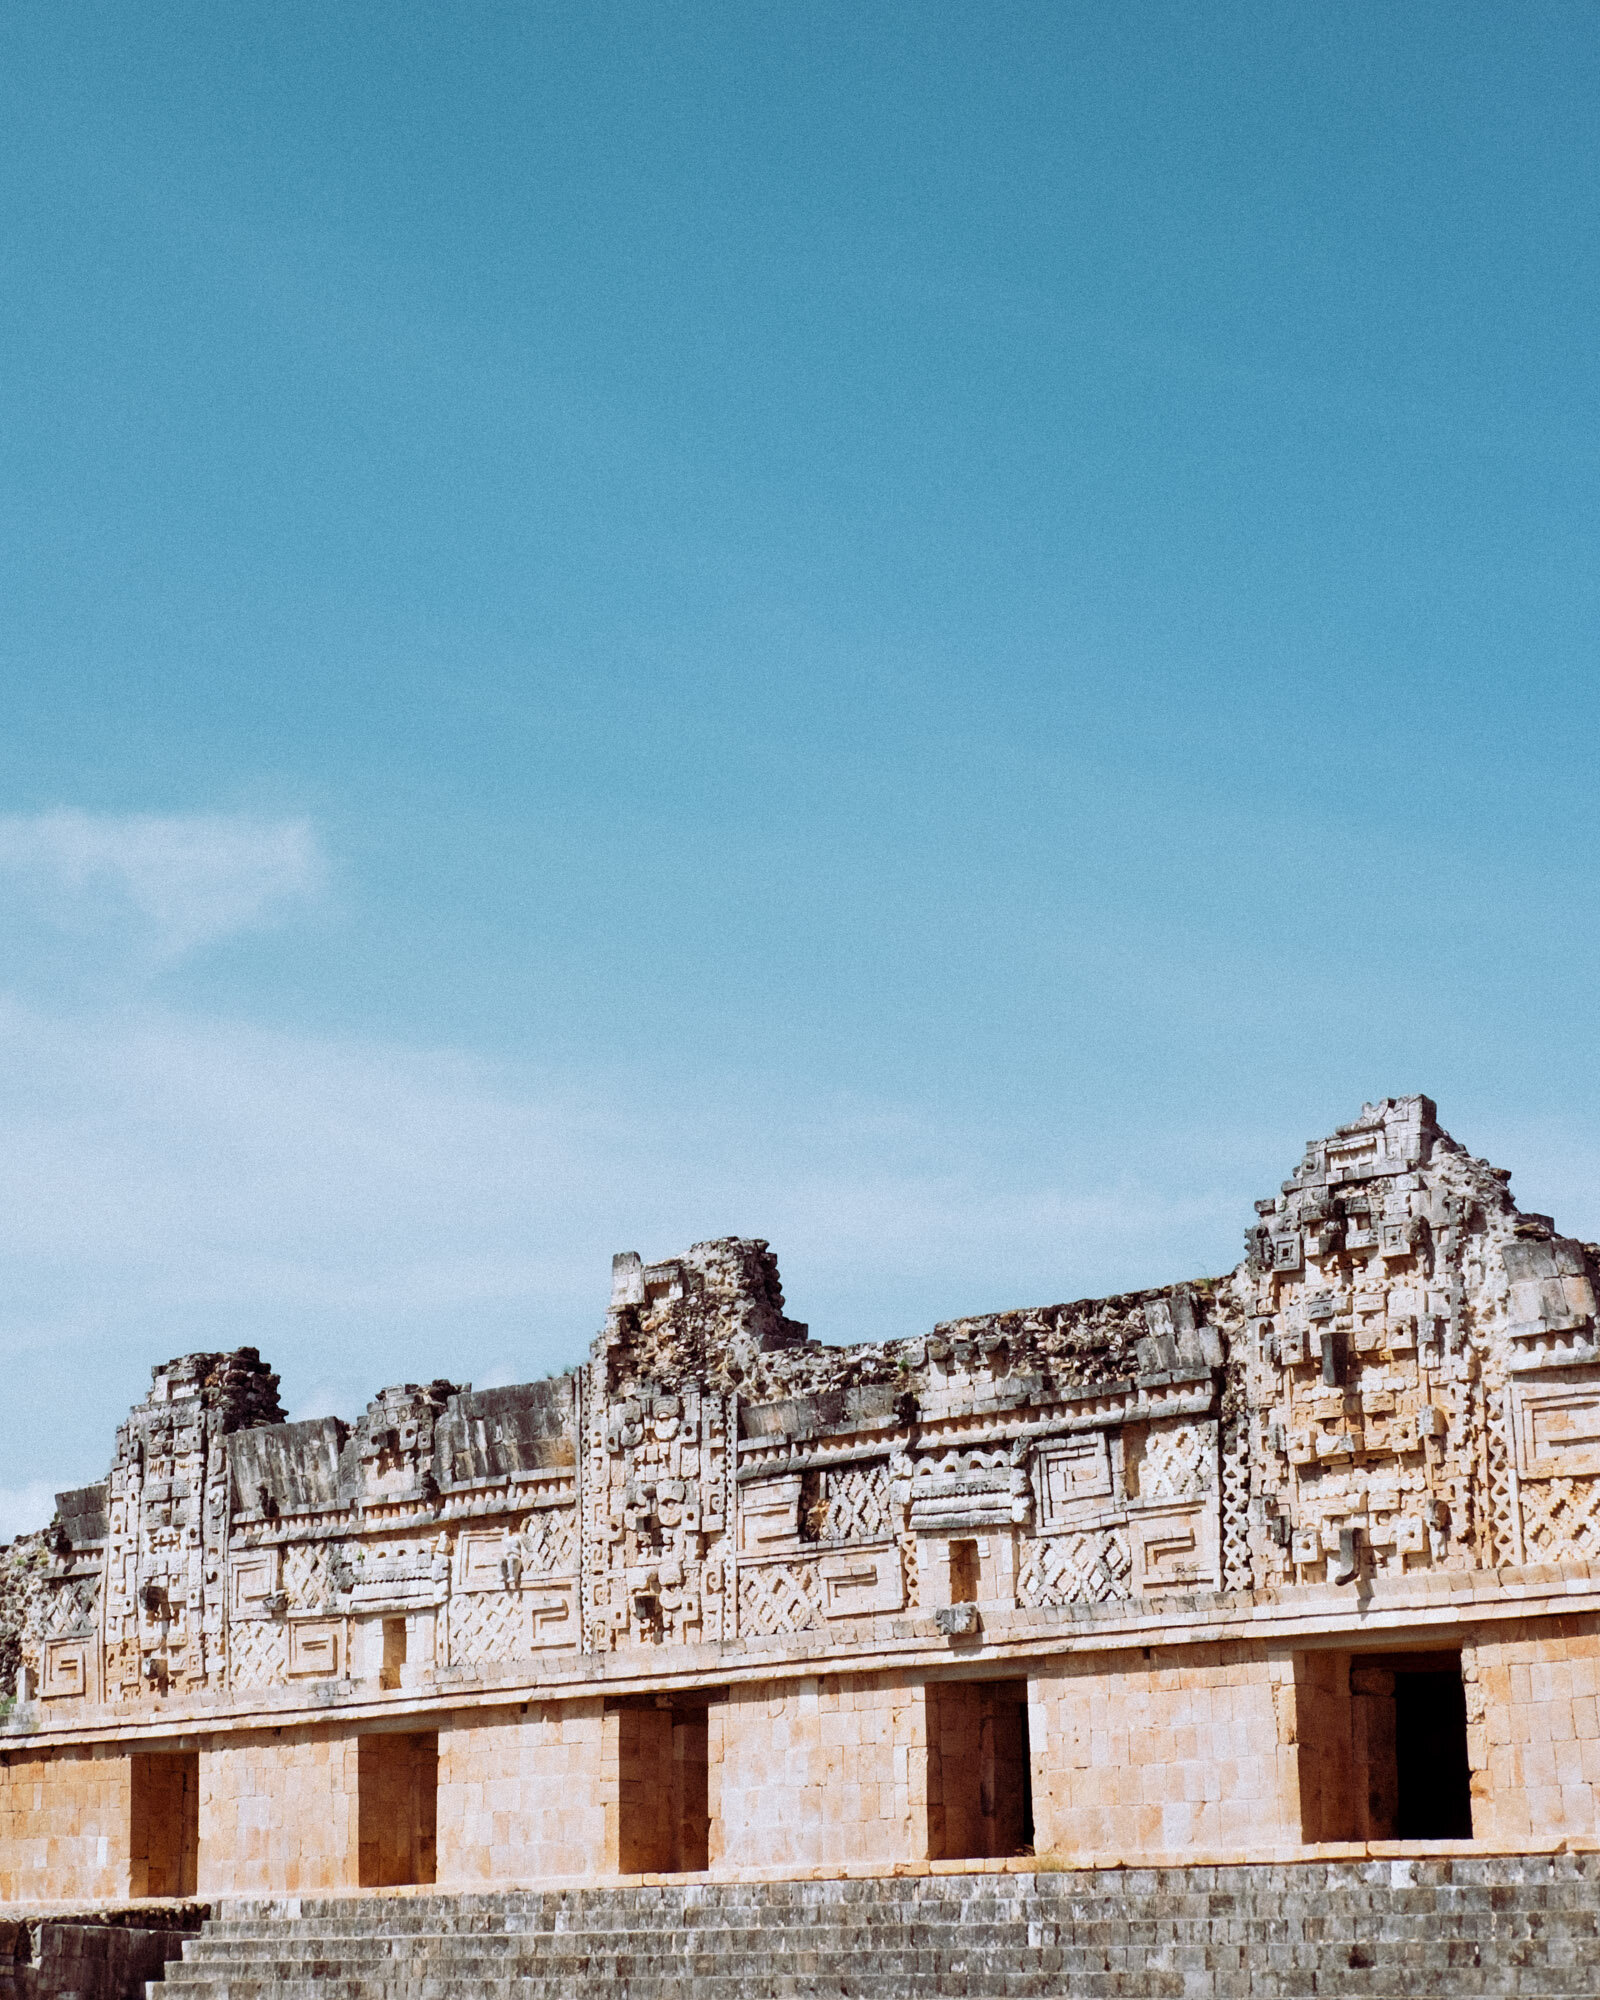 Rachel Off Duty: The Intricate Details of Uxmal's Ruins